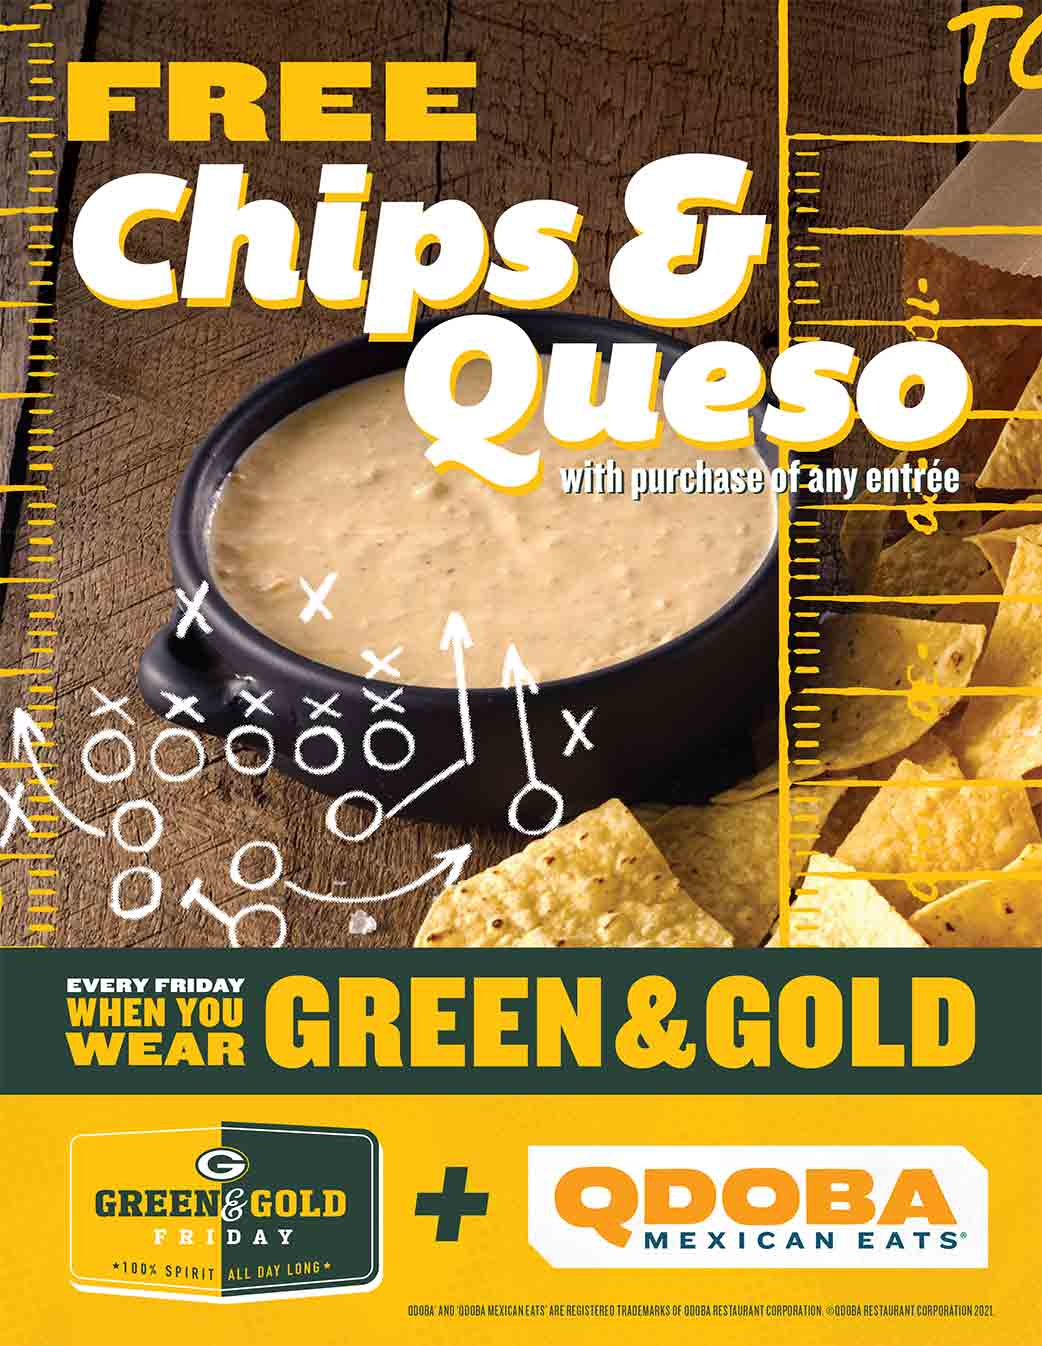 QDOBA Green and Gold Free Queso Promotion